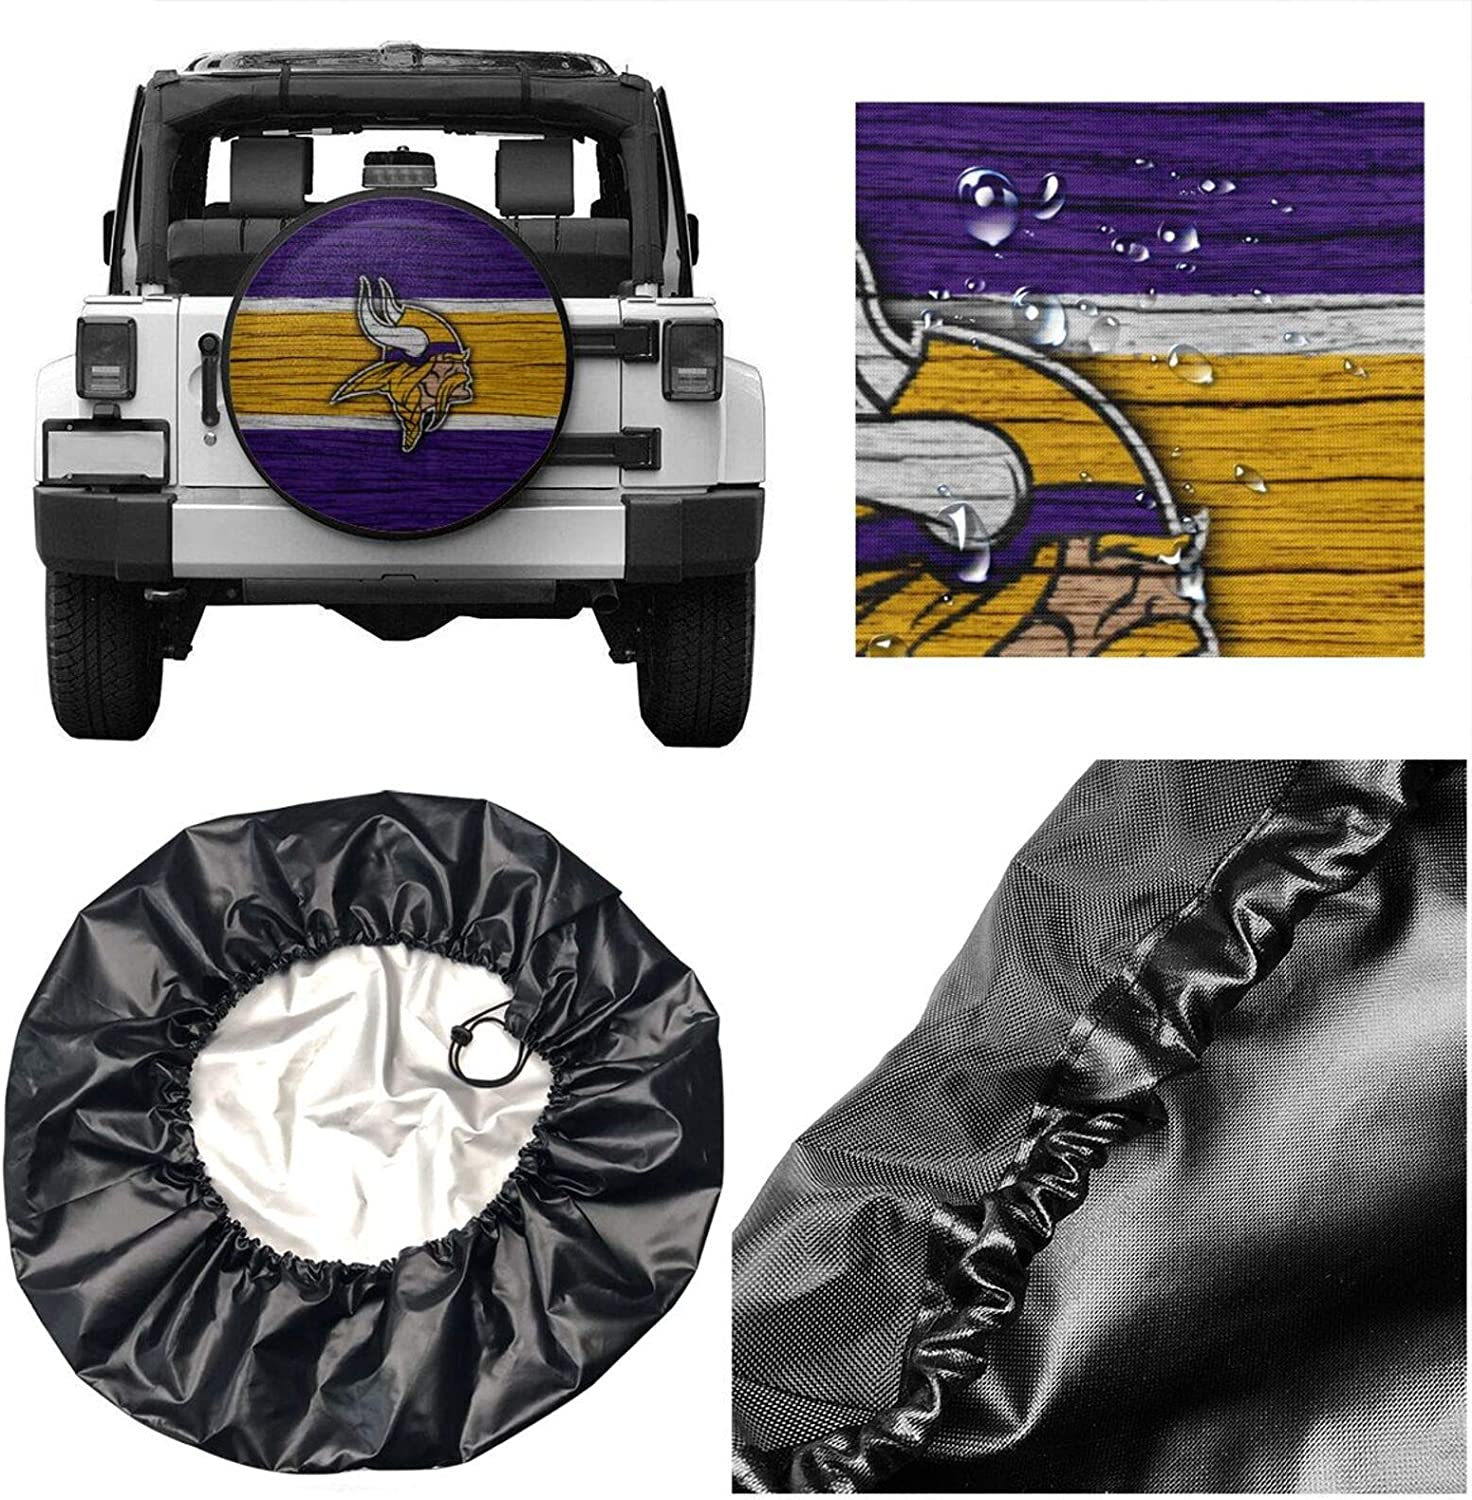 Truck etc. RV SUV Kangmei Tire Covers Minnesota American Football V-iki-ngs Universal Spare Wheel Tire Cover for Trailer